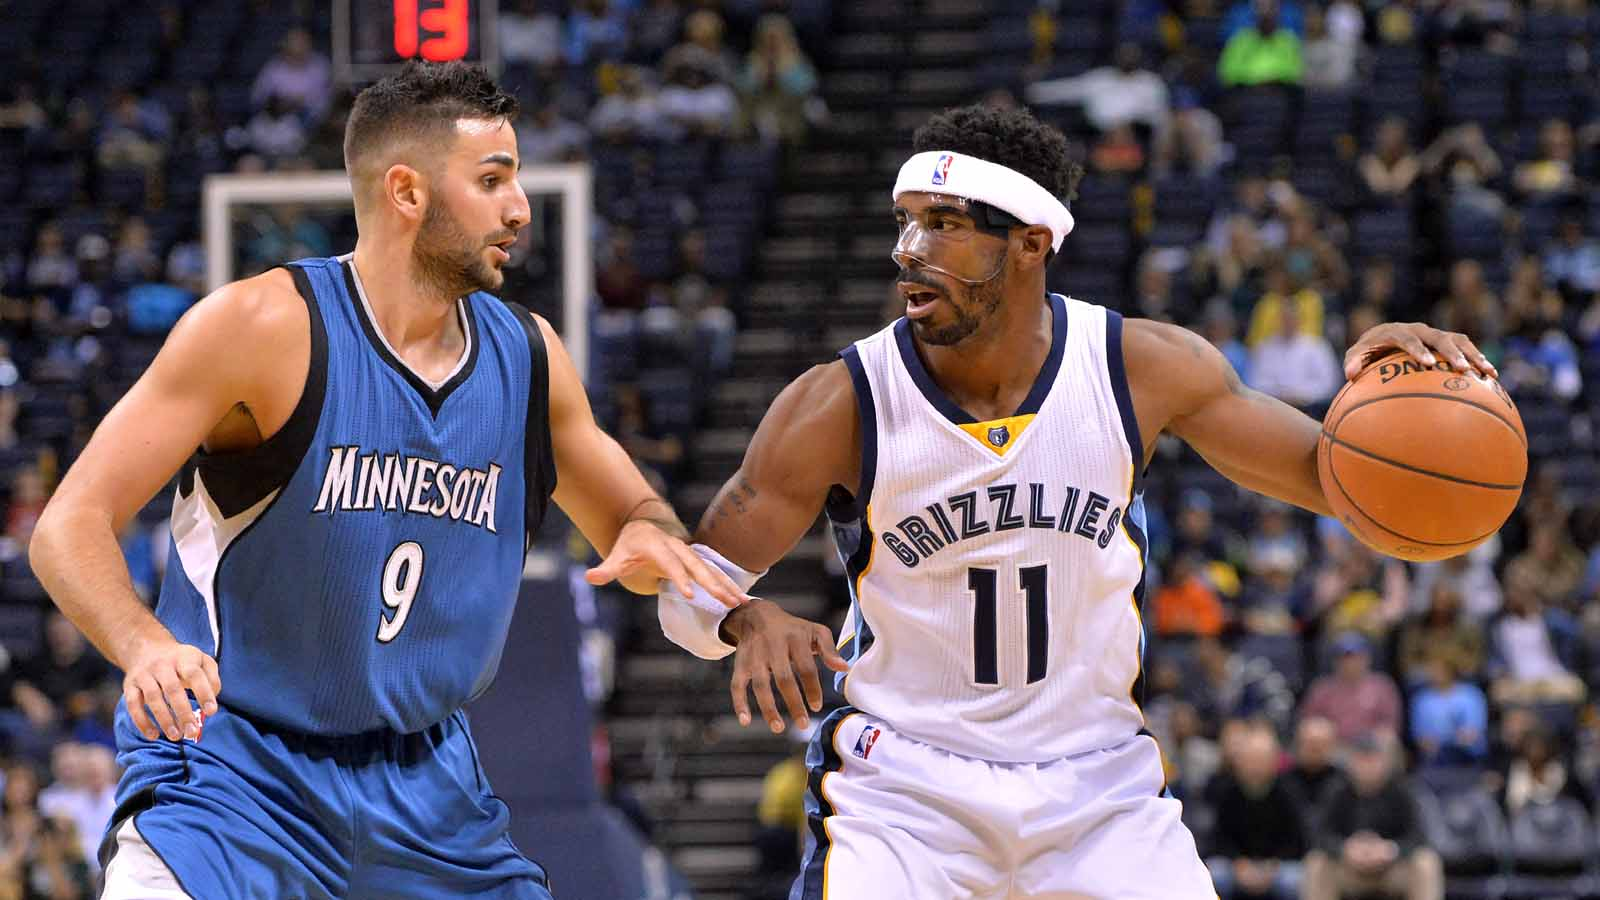 Timberwolves lose to Grizzlies despite Rubio's return